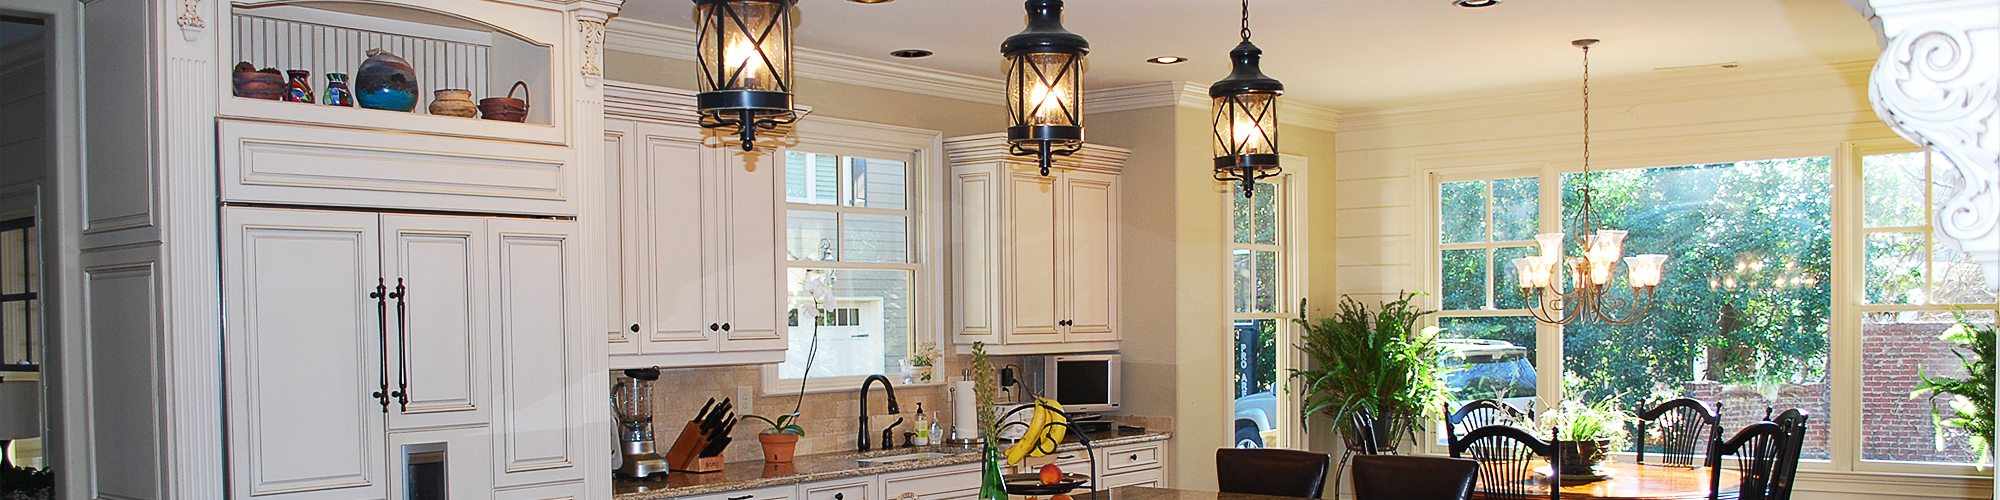 Your source for amazing custom kitchens in Norcross, GA